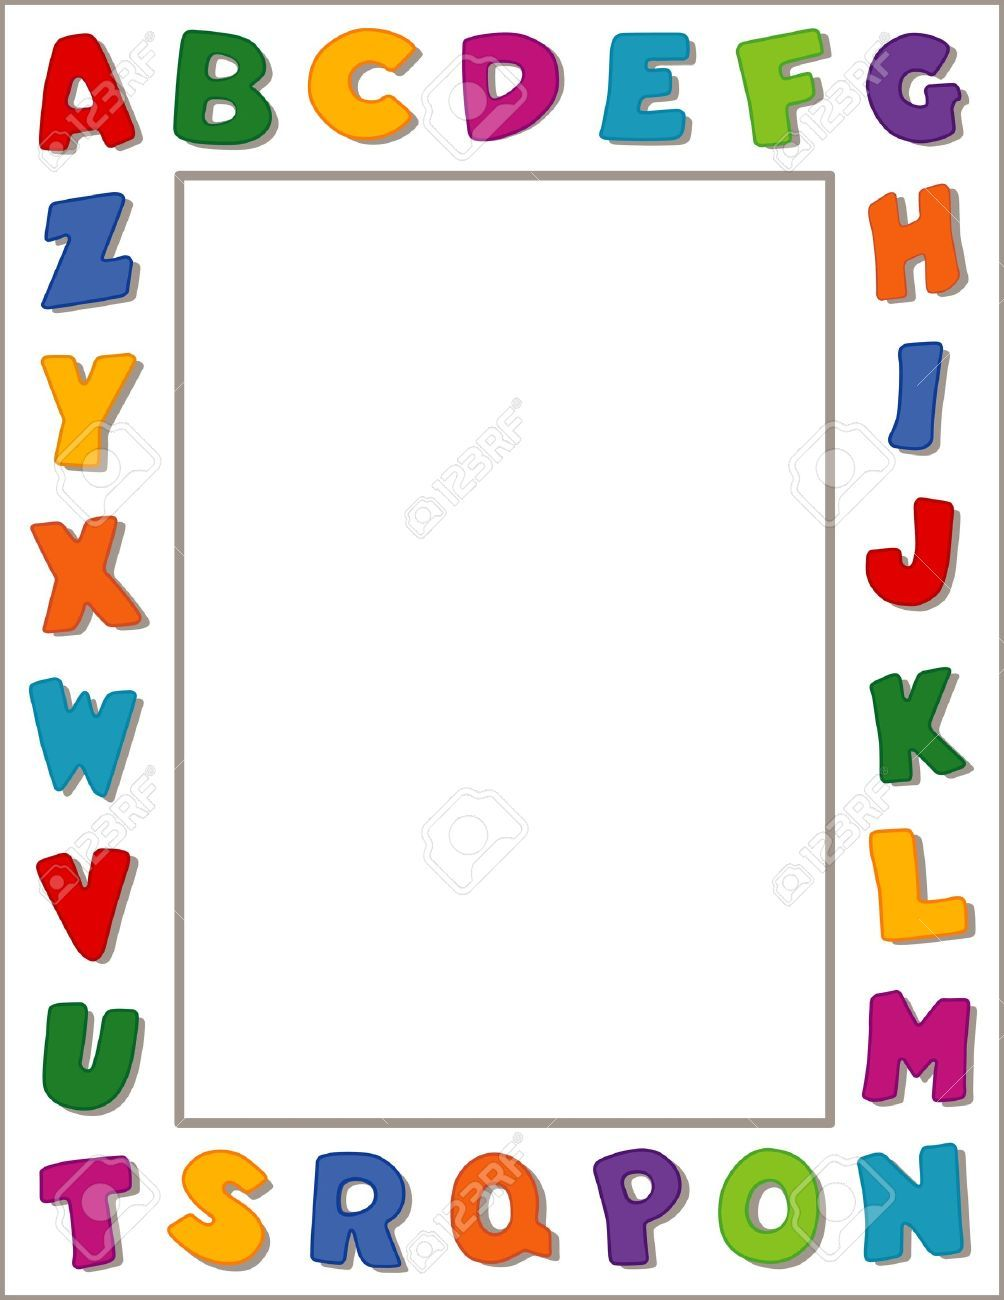 Abc clipart banner. School page borders google